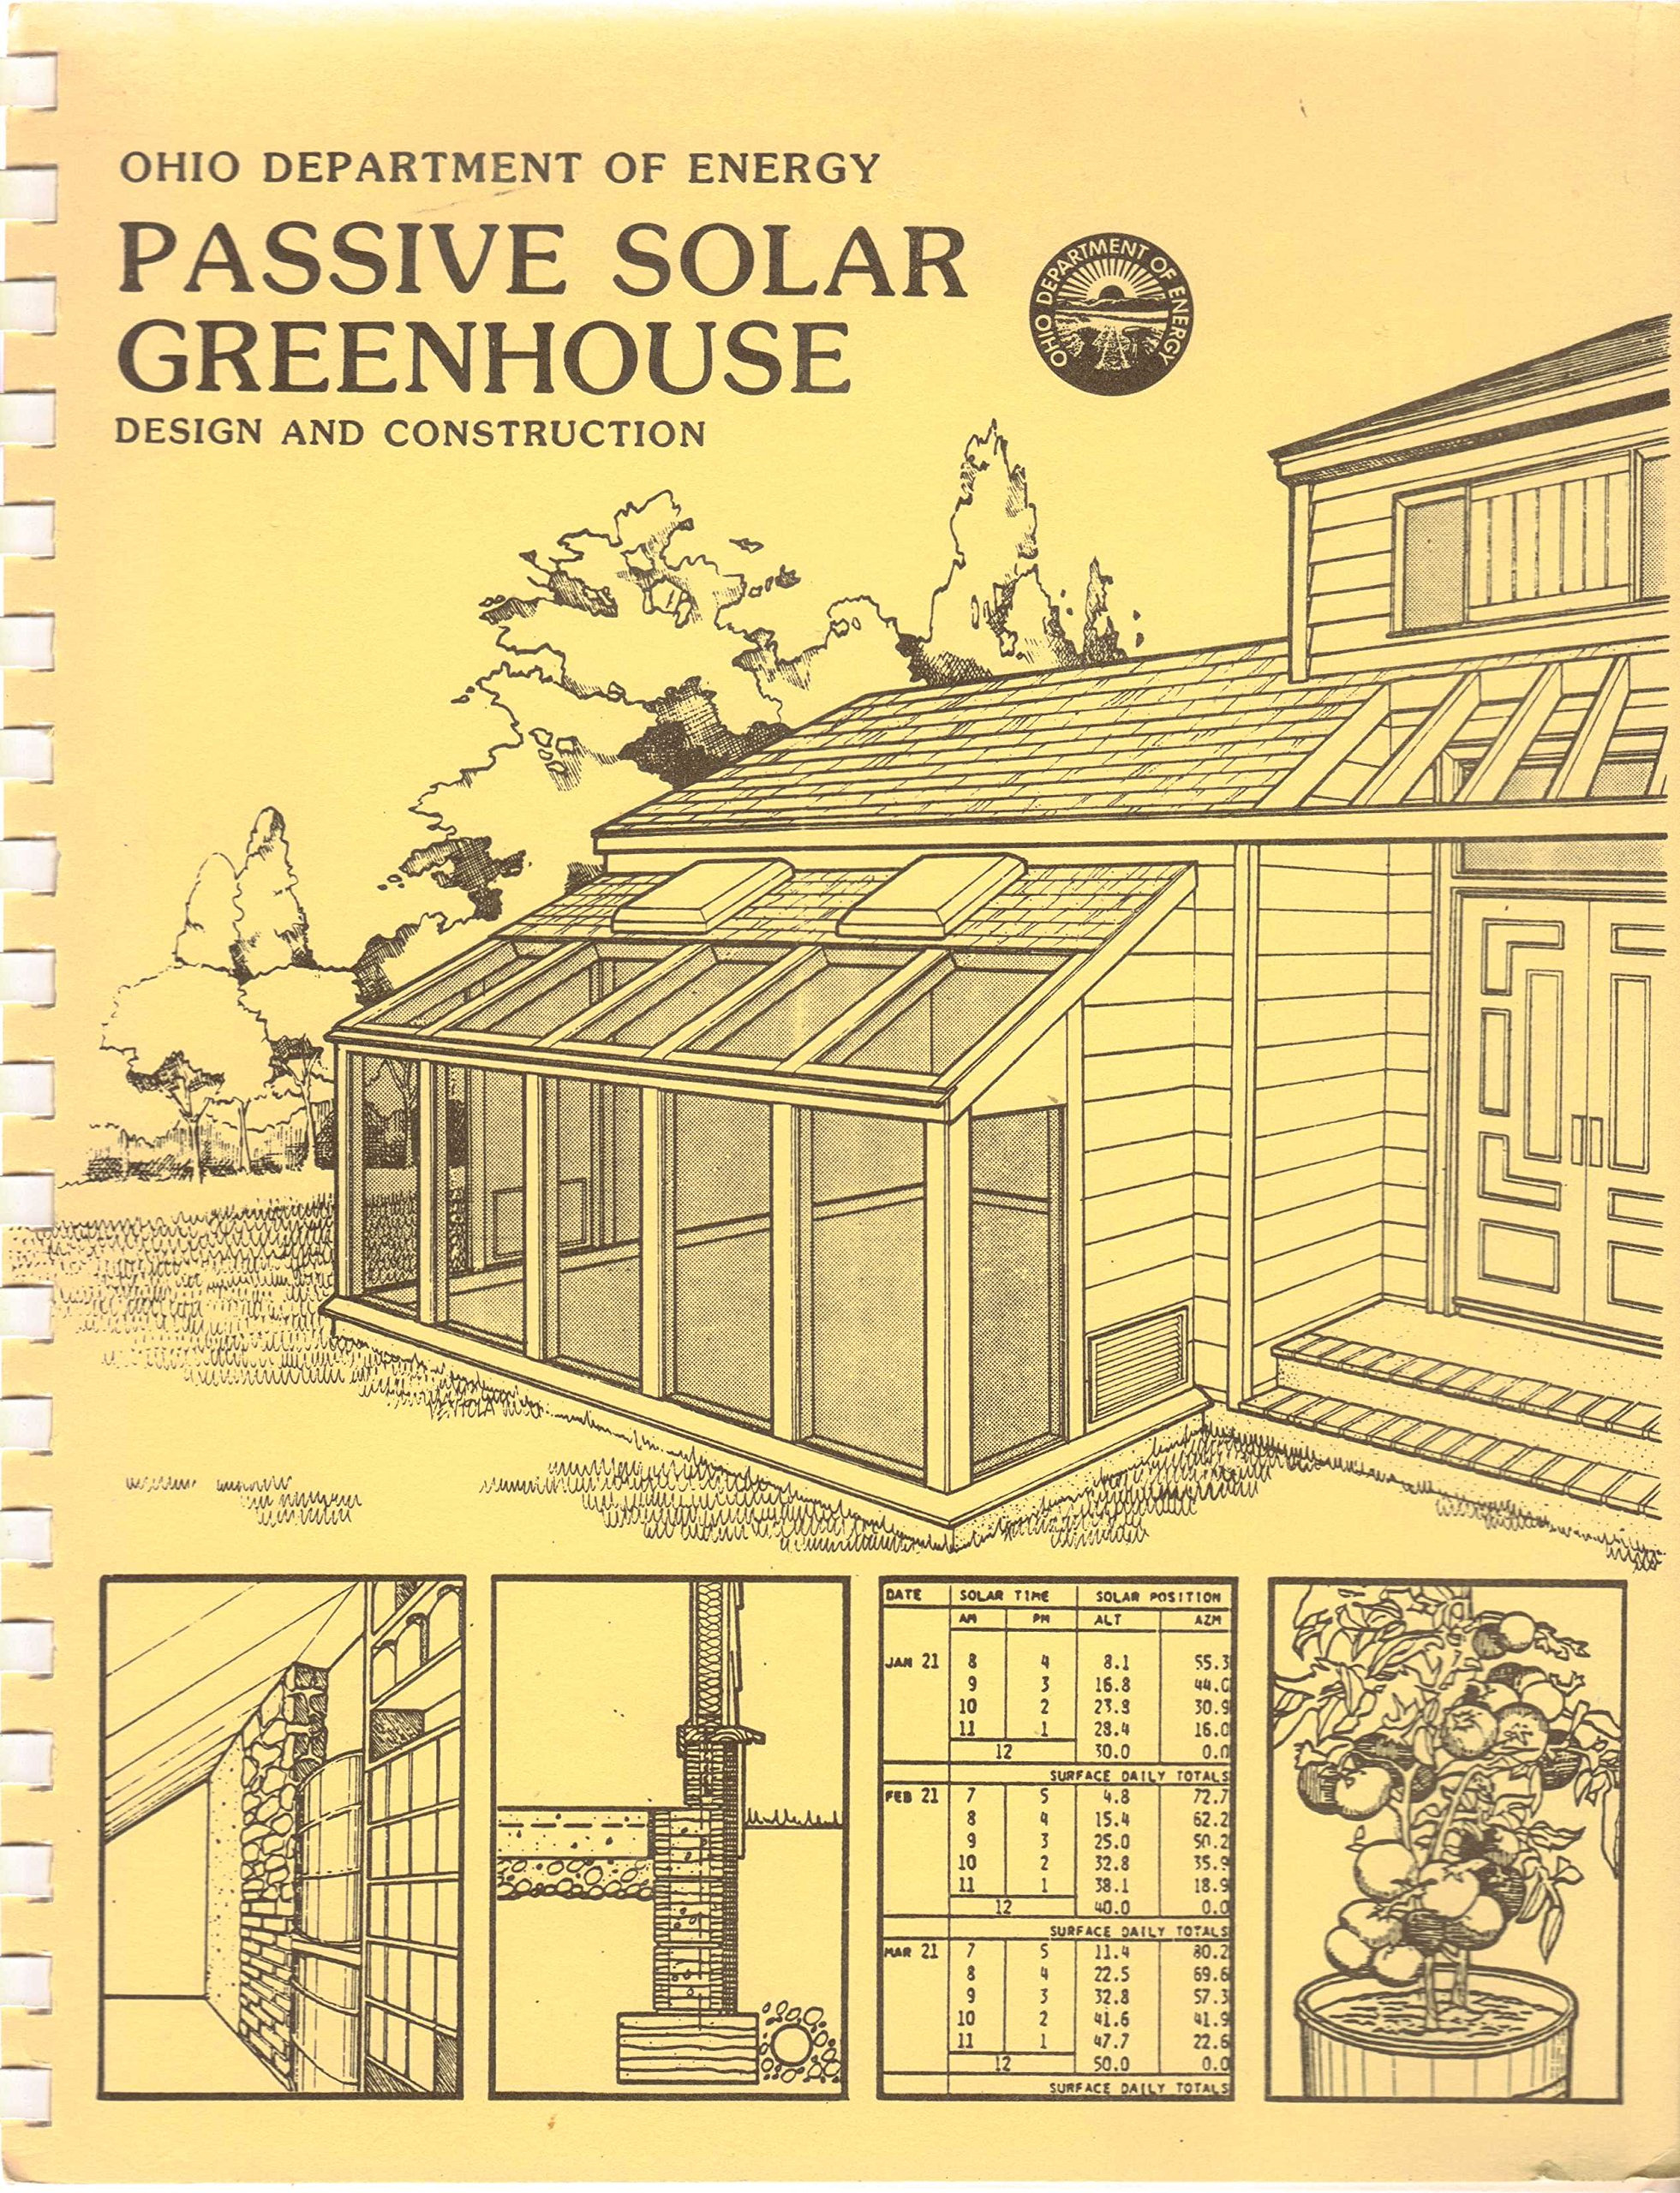 Green House Plans Free Awesome Passive solar Greenhouse Design and Construction for Ohio